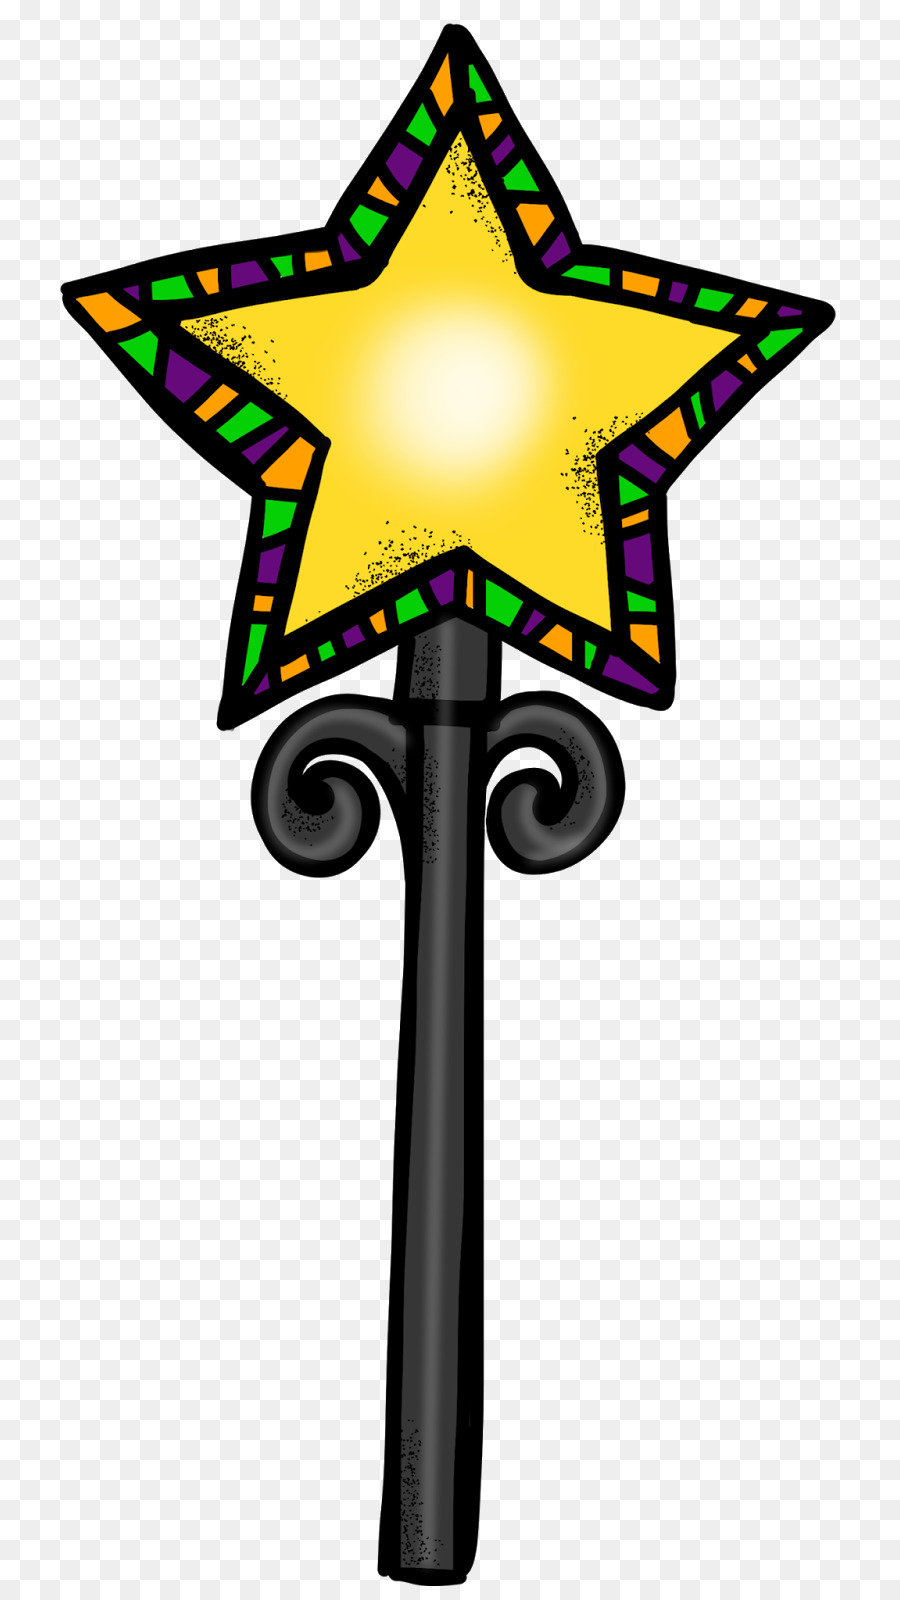 Witch wand free clipart clip art library download Magic Wand Background clipart - Drawing, Illustration, Magic ... clip art library download